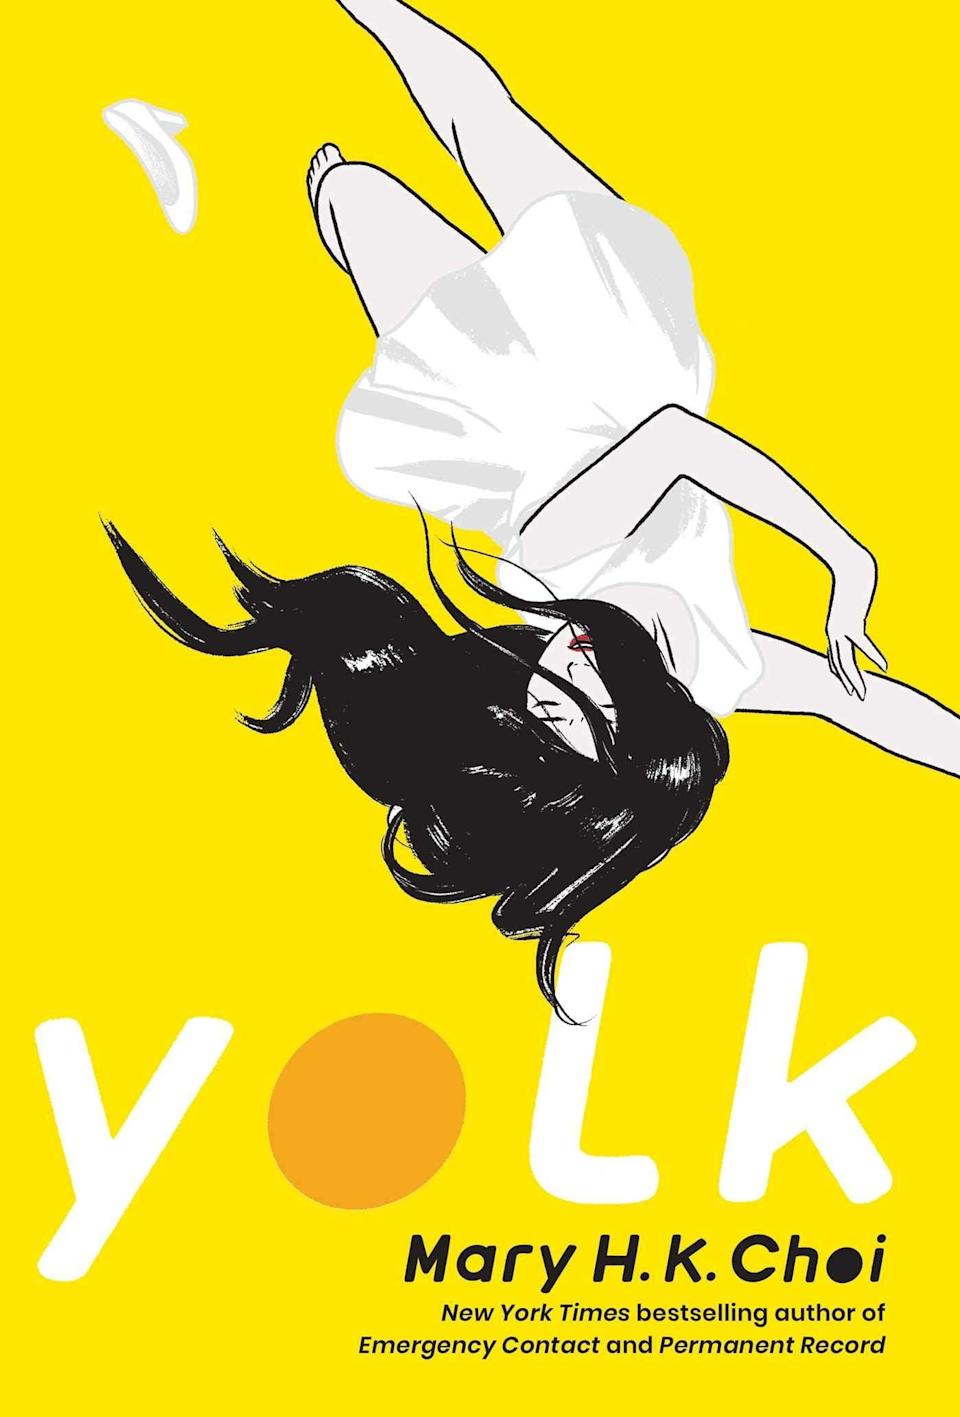 <p><span><strong>Yolk</strong></span> by Mary H.K. Choi is a story about the complicated bond between two estranged sisters. Jayne and June Baek have nothing in common aside from their parents, but when June is diagnosed with cancer, Jayne has to find a way to be there for her sister - and in the process, she'll have to face an issue that she's been avoiding, too. </p> <p><em>Out March 2</em></p>